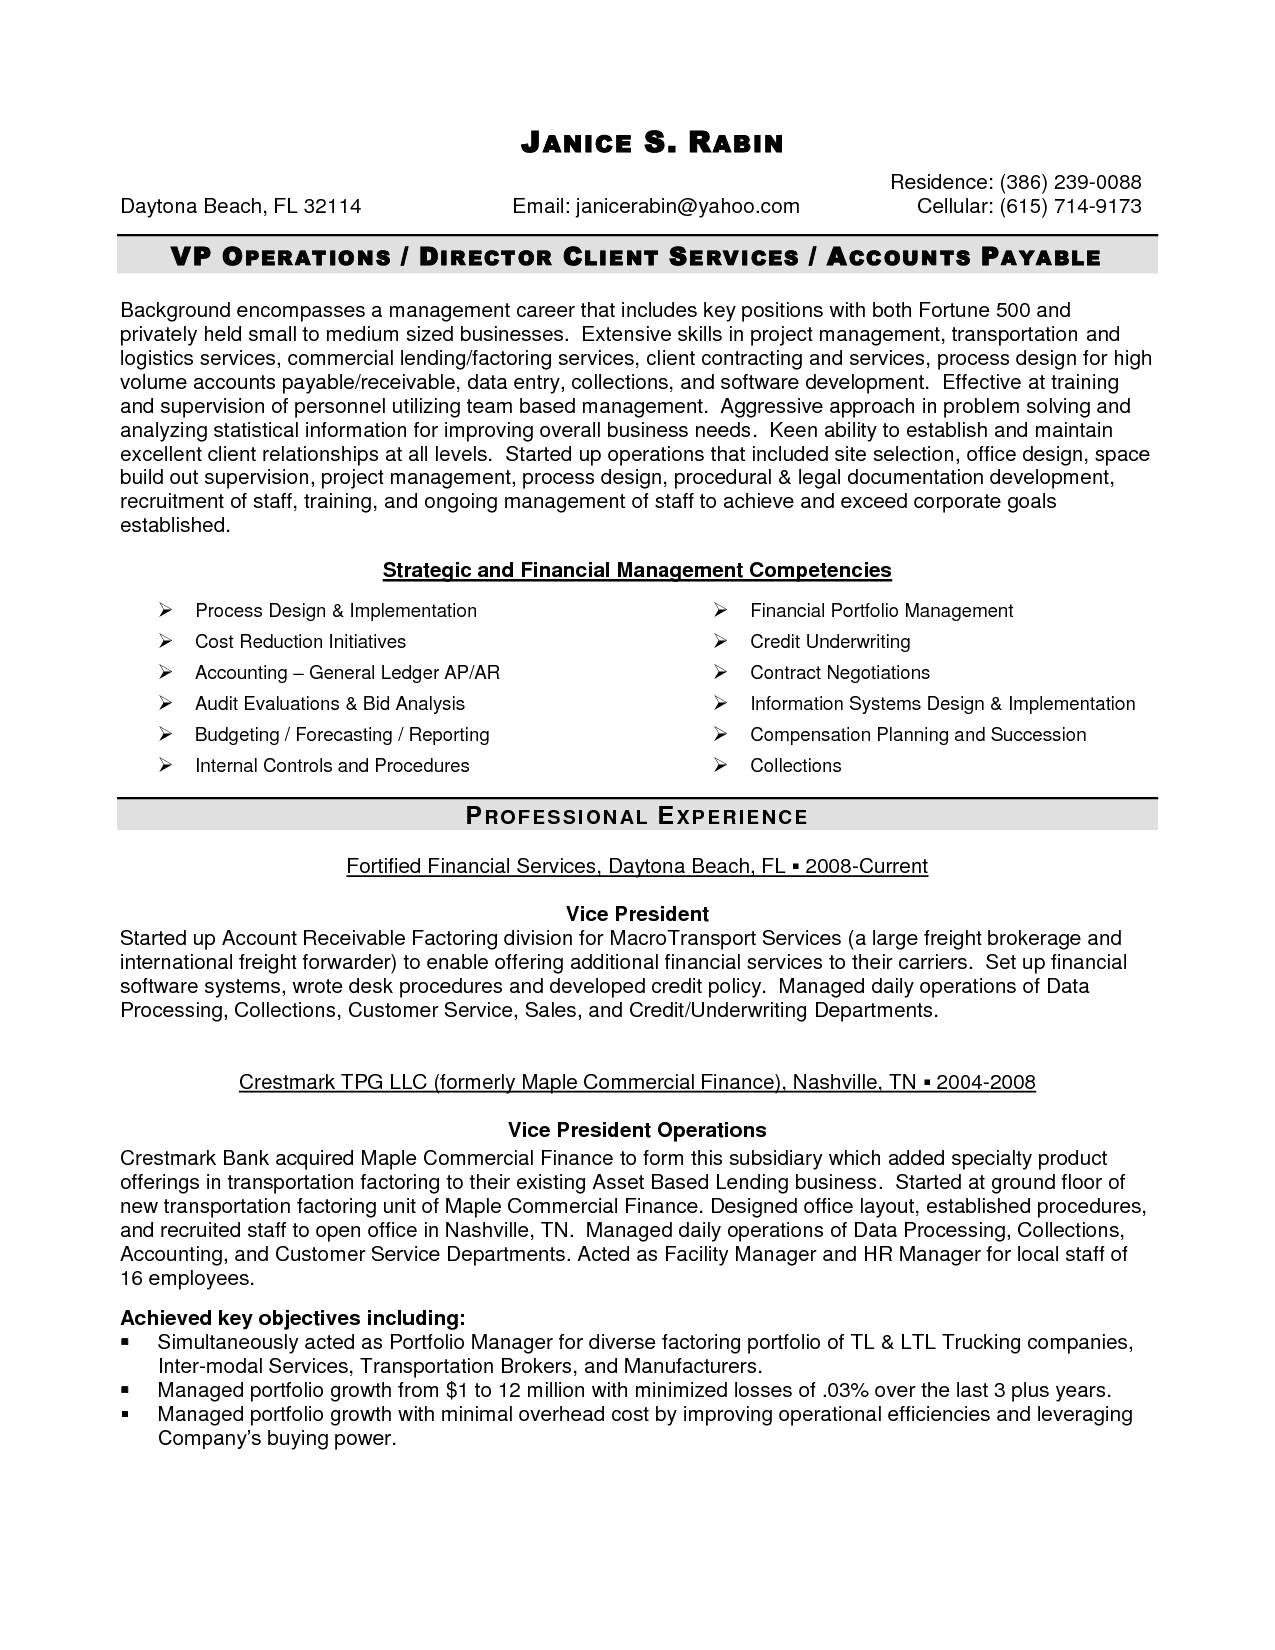 financial services resume template Collection-Reseume Templates Fresh Resume Templates with formatted Resume 0d 15-c